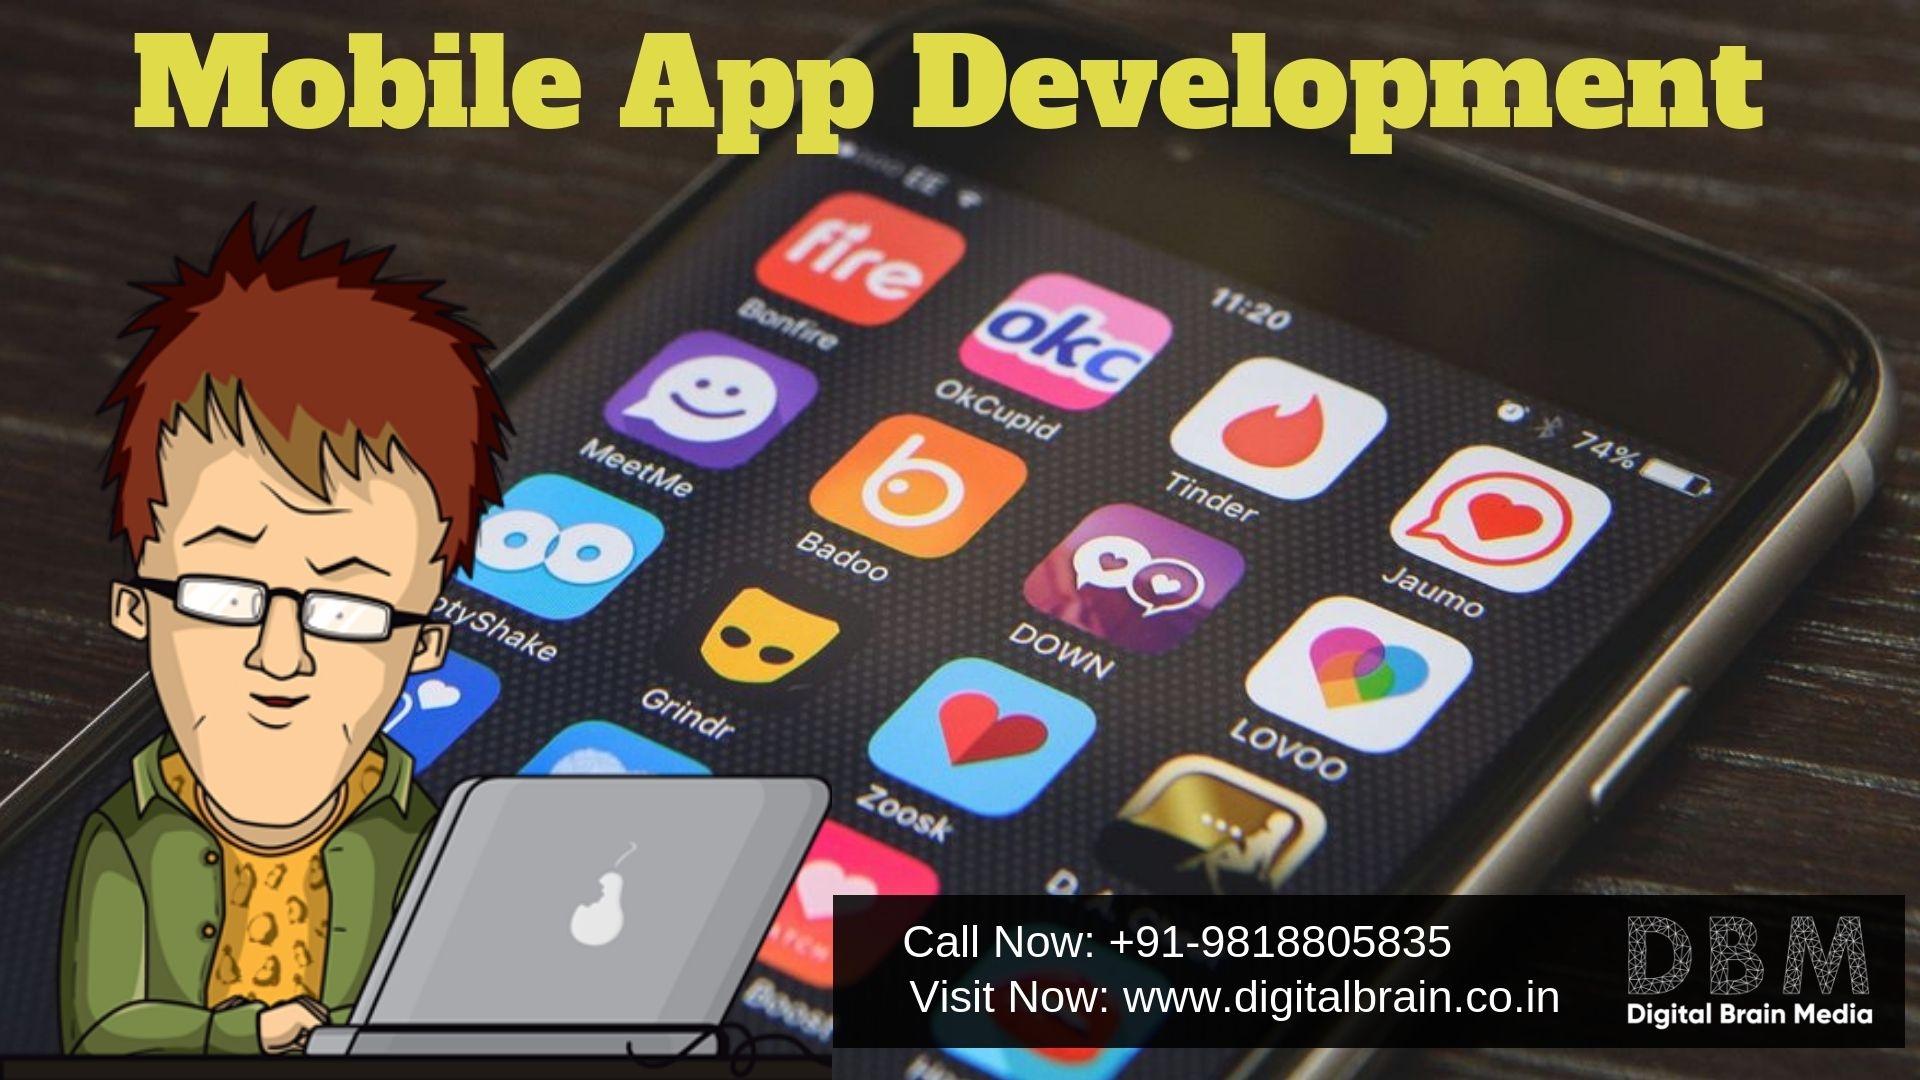 Mobile App Development Company In Lucknow App Development